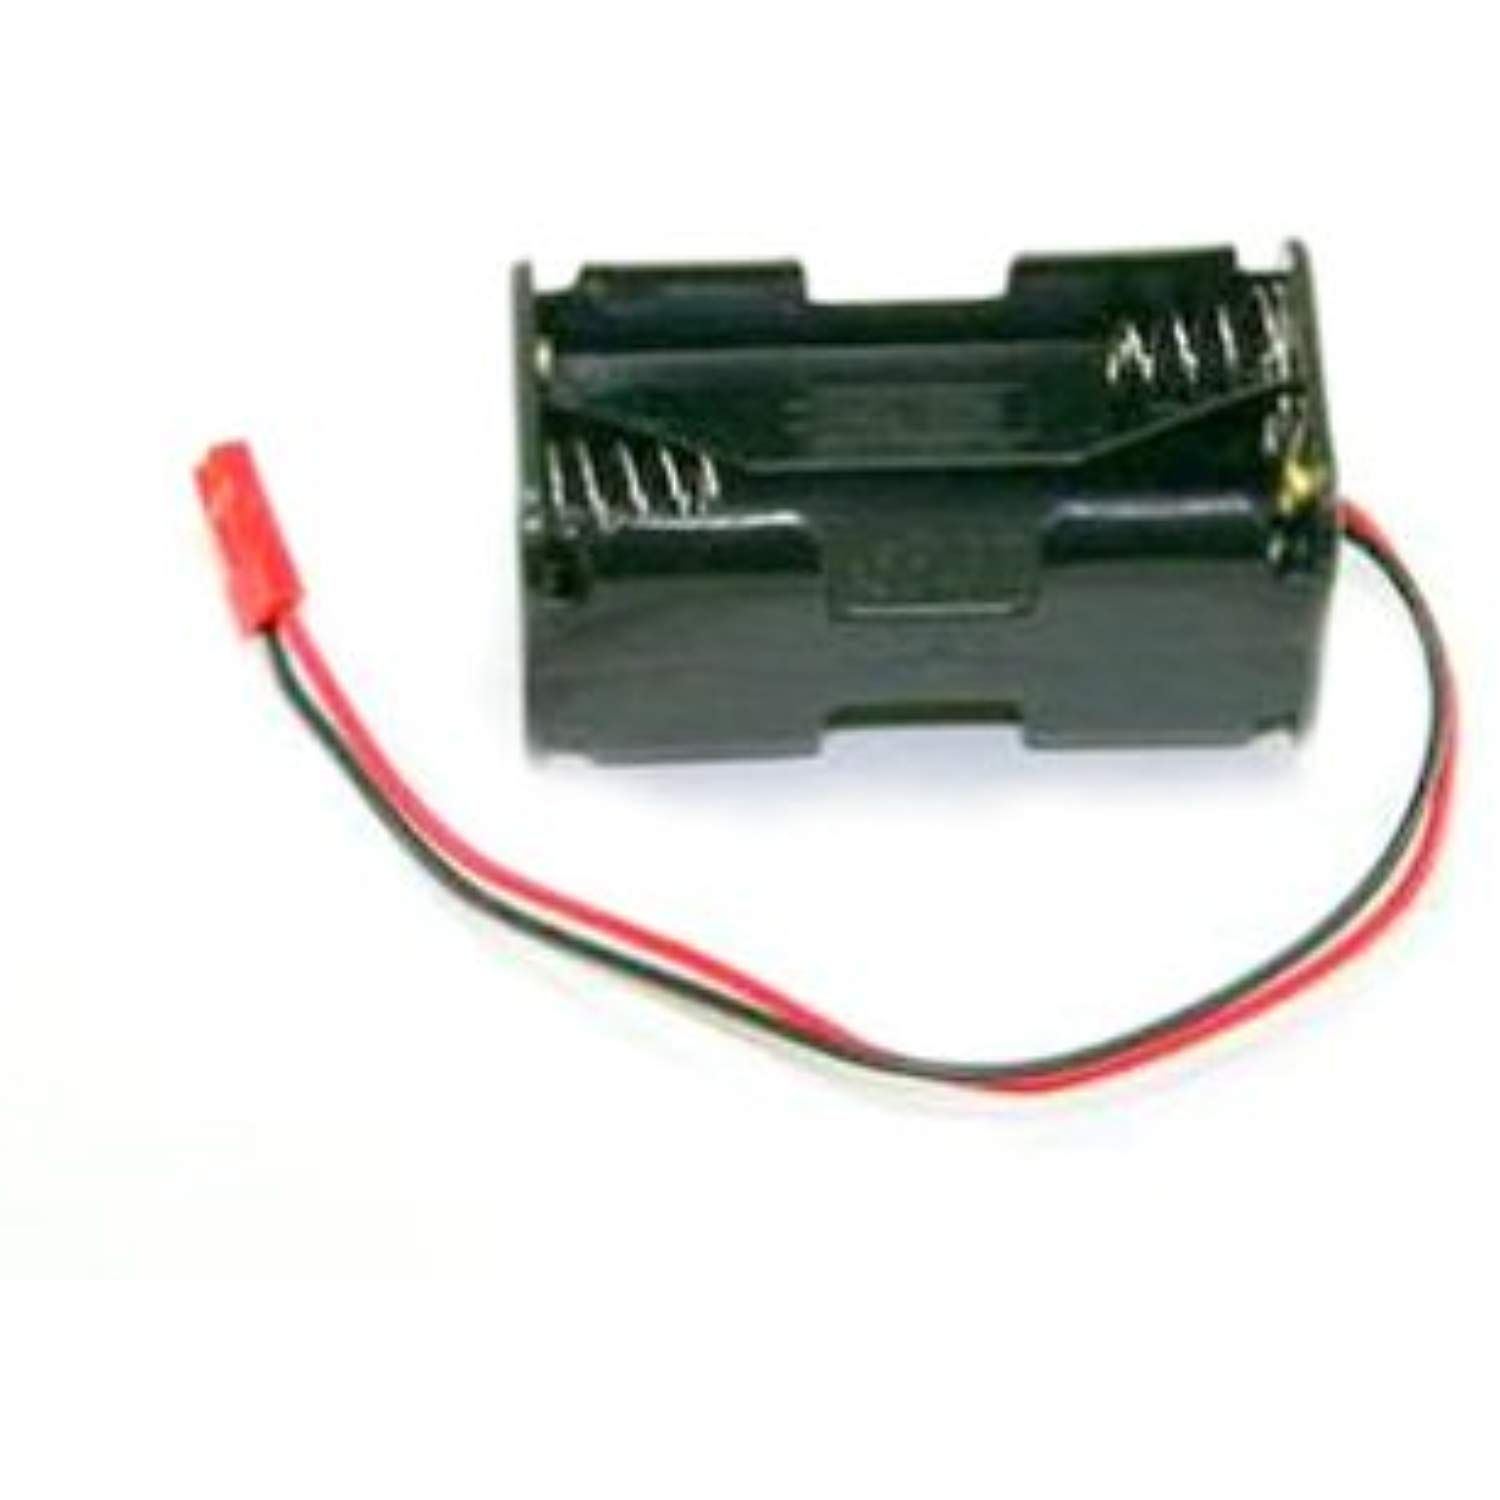 Redcat Racing 02070 4 Cell Aa Battery Holder Want Additional Info Click On The Image This Is An Affiliate Link Battery Holder Redcat Racing Battery